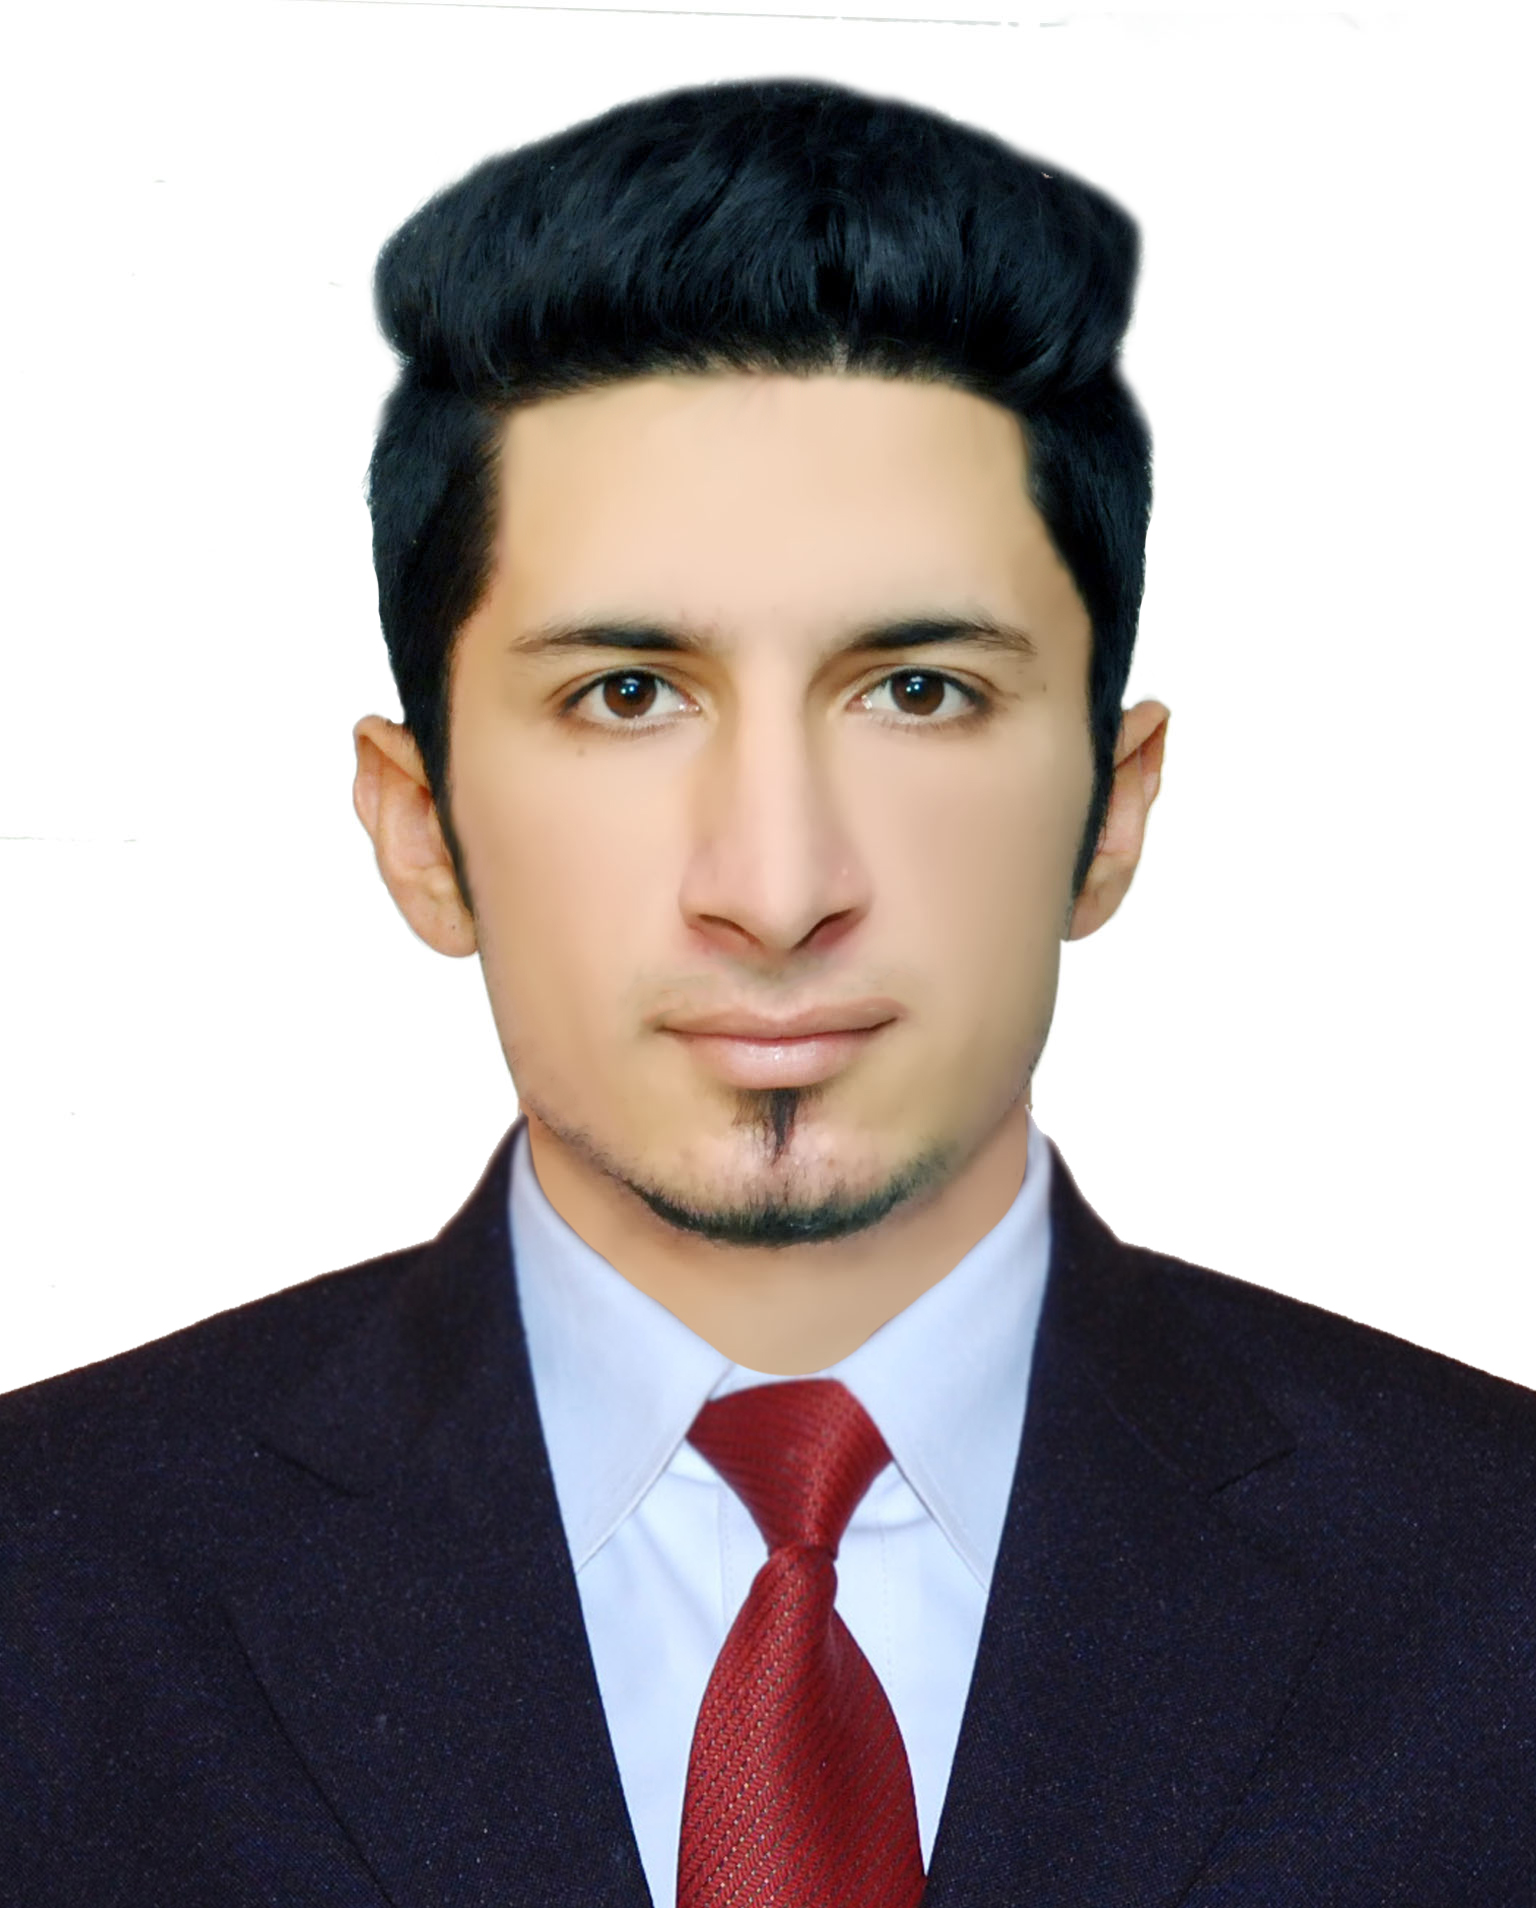 abdul rehman nizamani mehran university  engineering technology mechanical engineering hyderabad